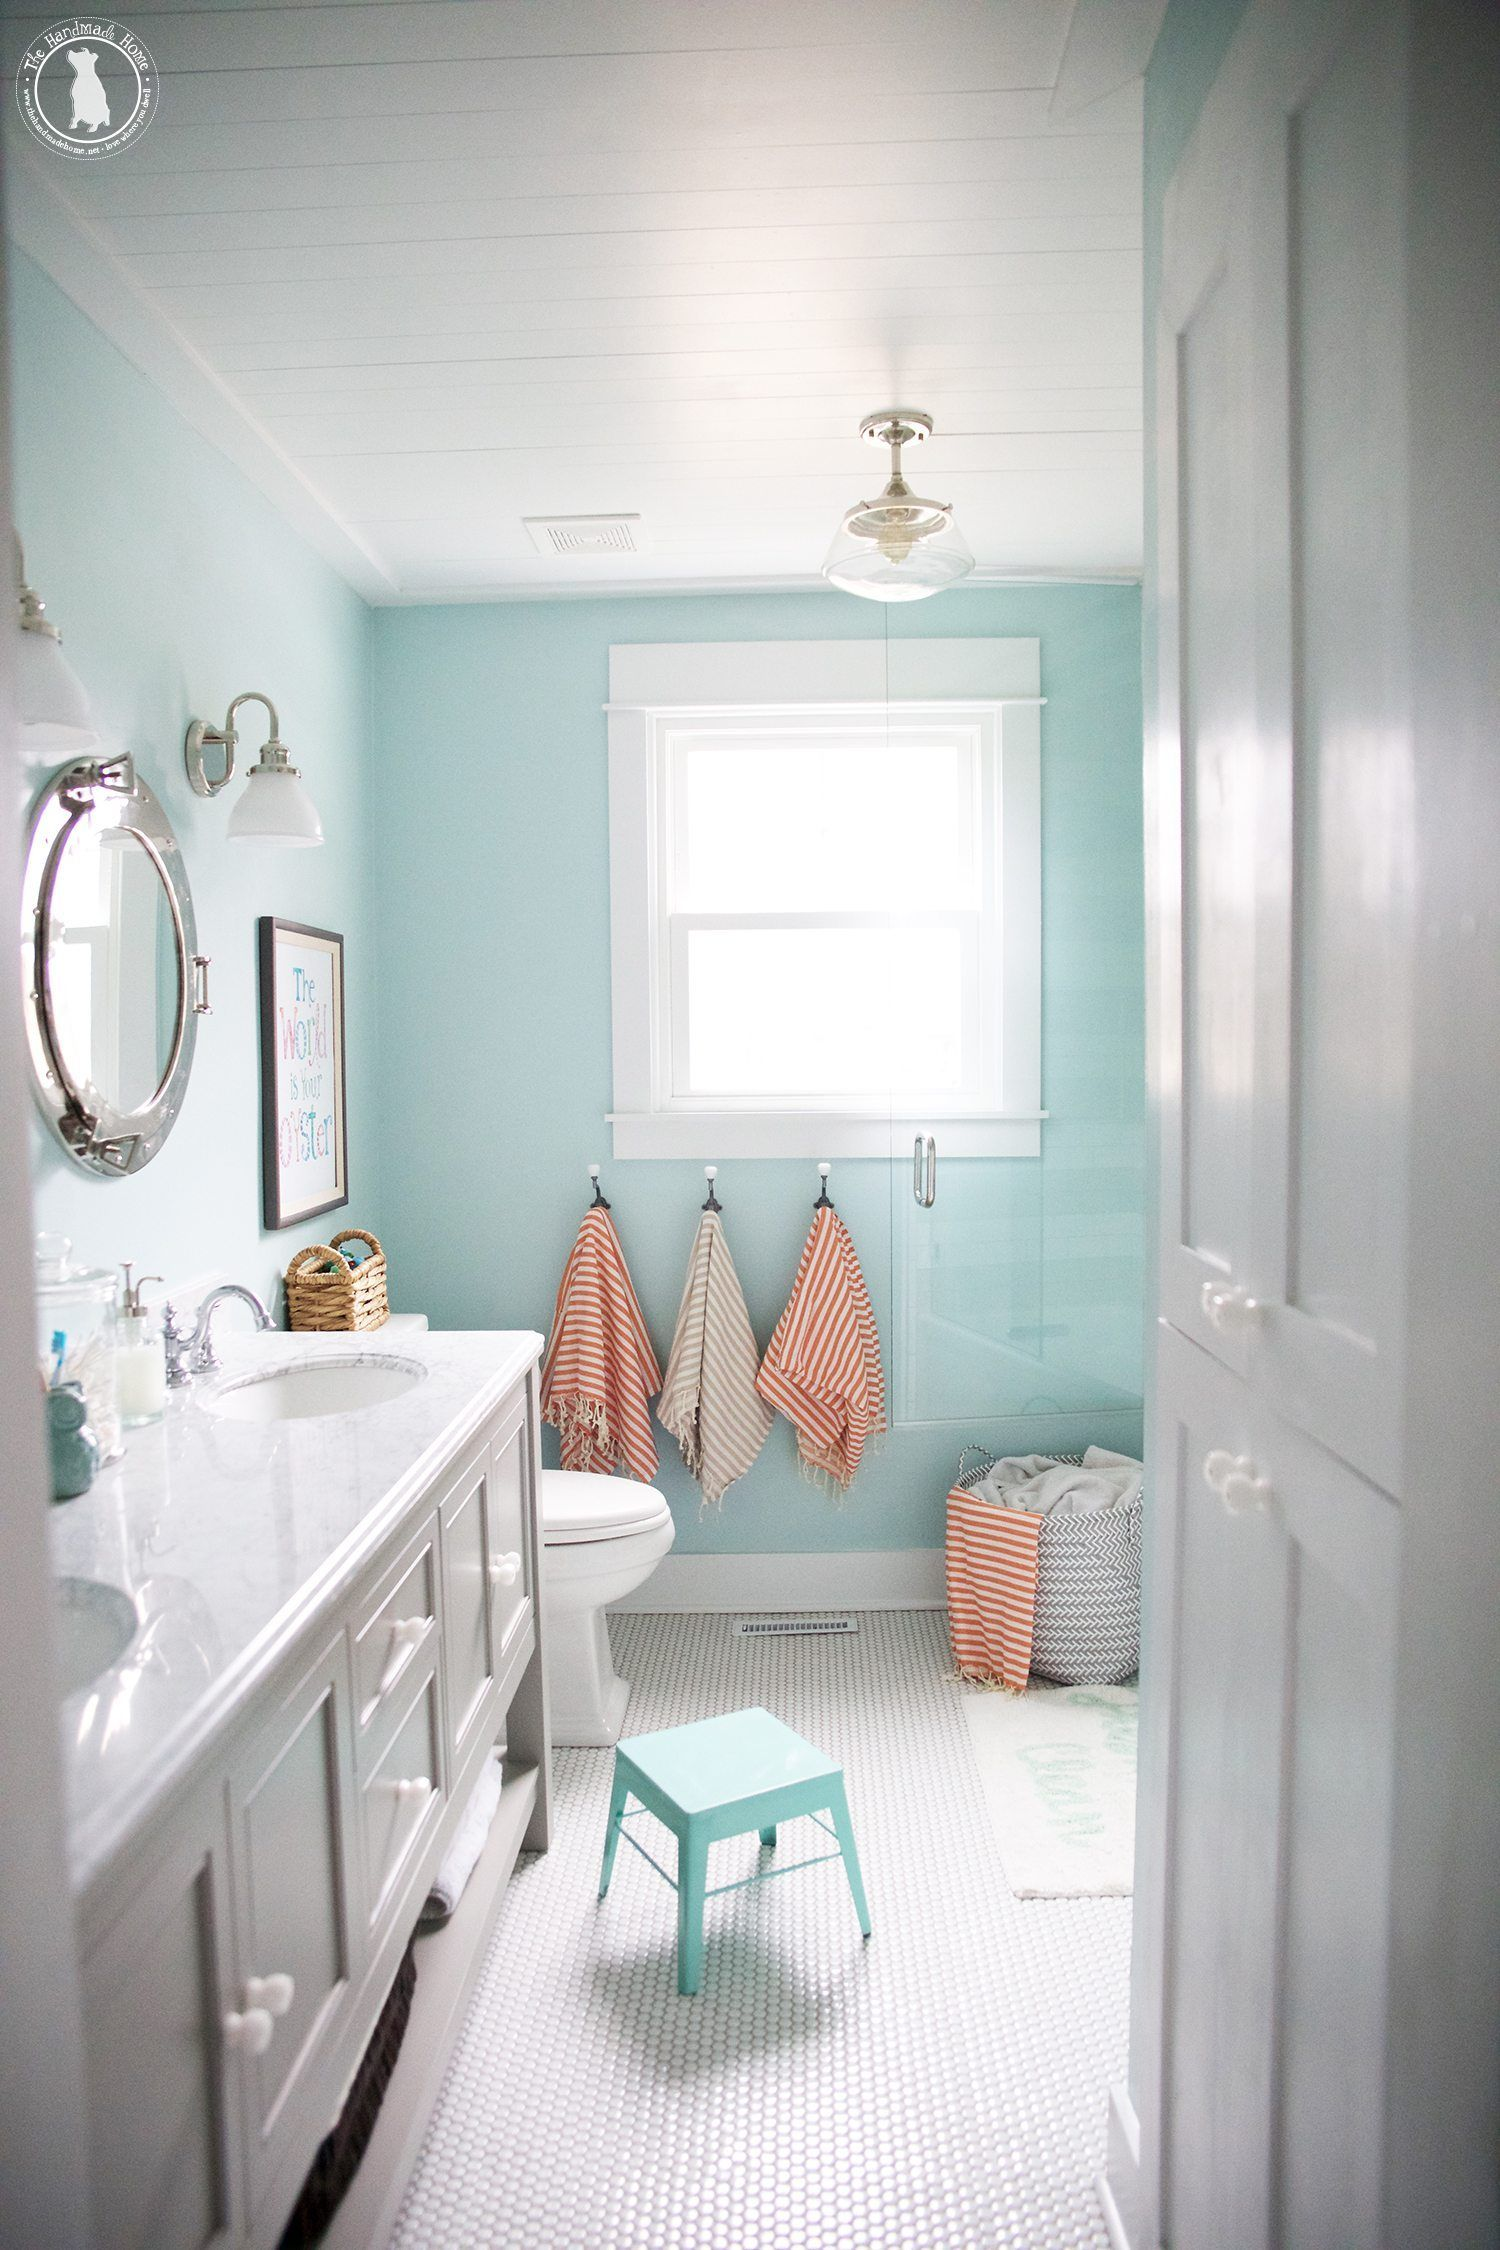 Kids Bathroom Ideas That'll Make Them Excited for Bathtime